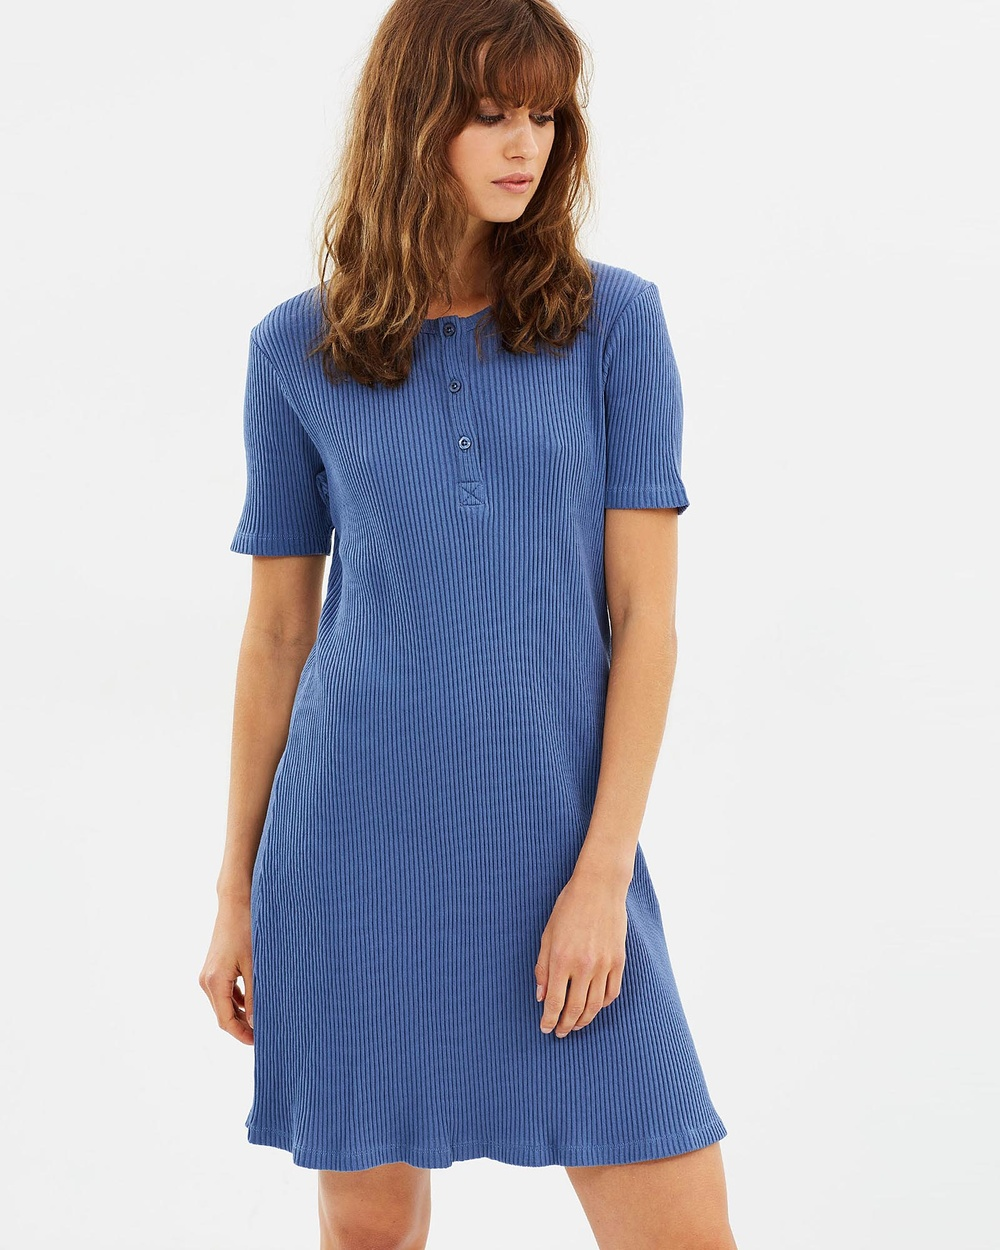 Ryder Jet Ribbed Dress Dresses Blue Jet Ribbed Dress